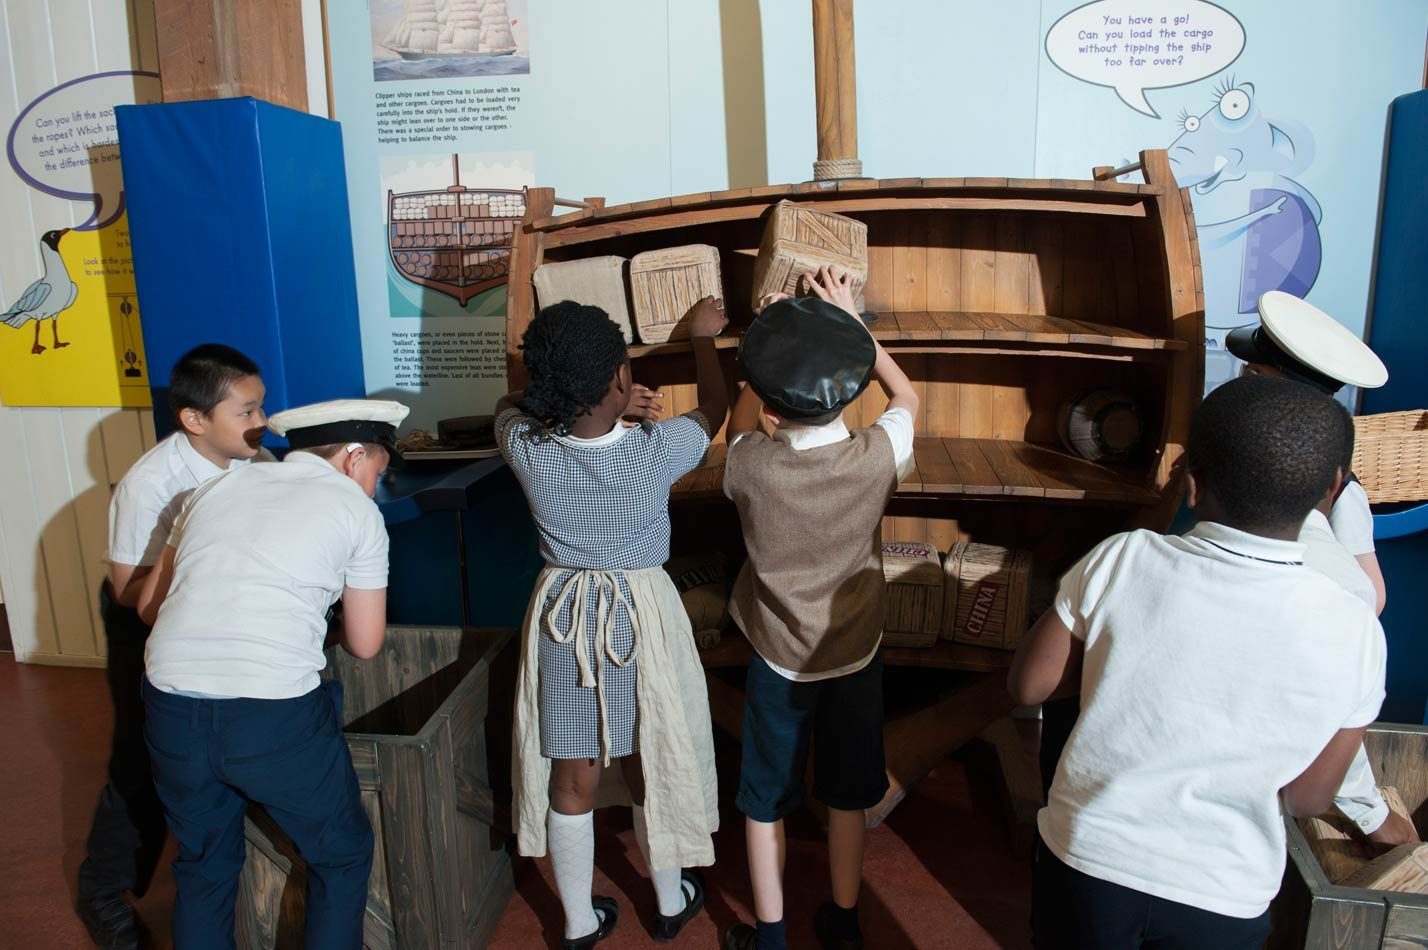 Children visiting the Mudlarks gallery play with the Tip the Clipper interactive.